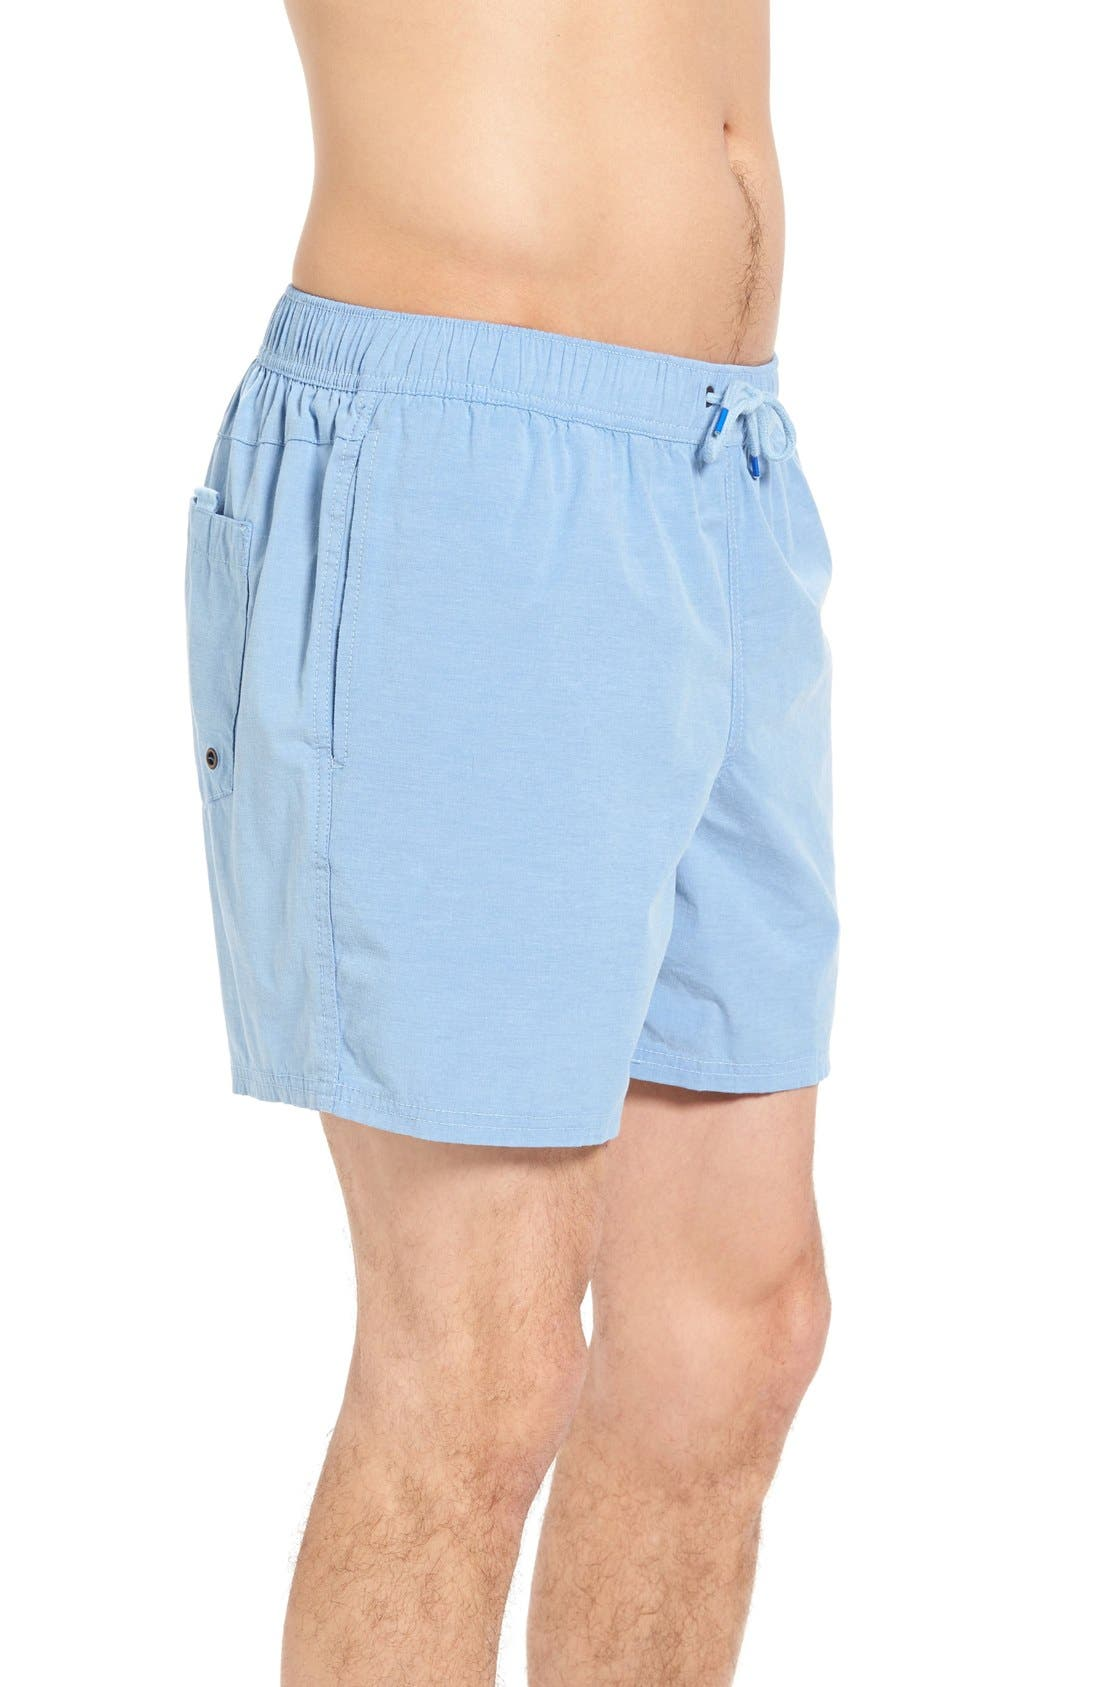 Waikiki Board Shorts,                             Alternate thumbnail 26, color,